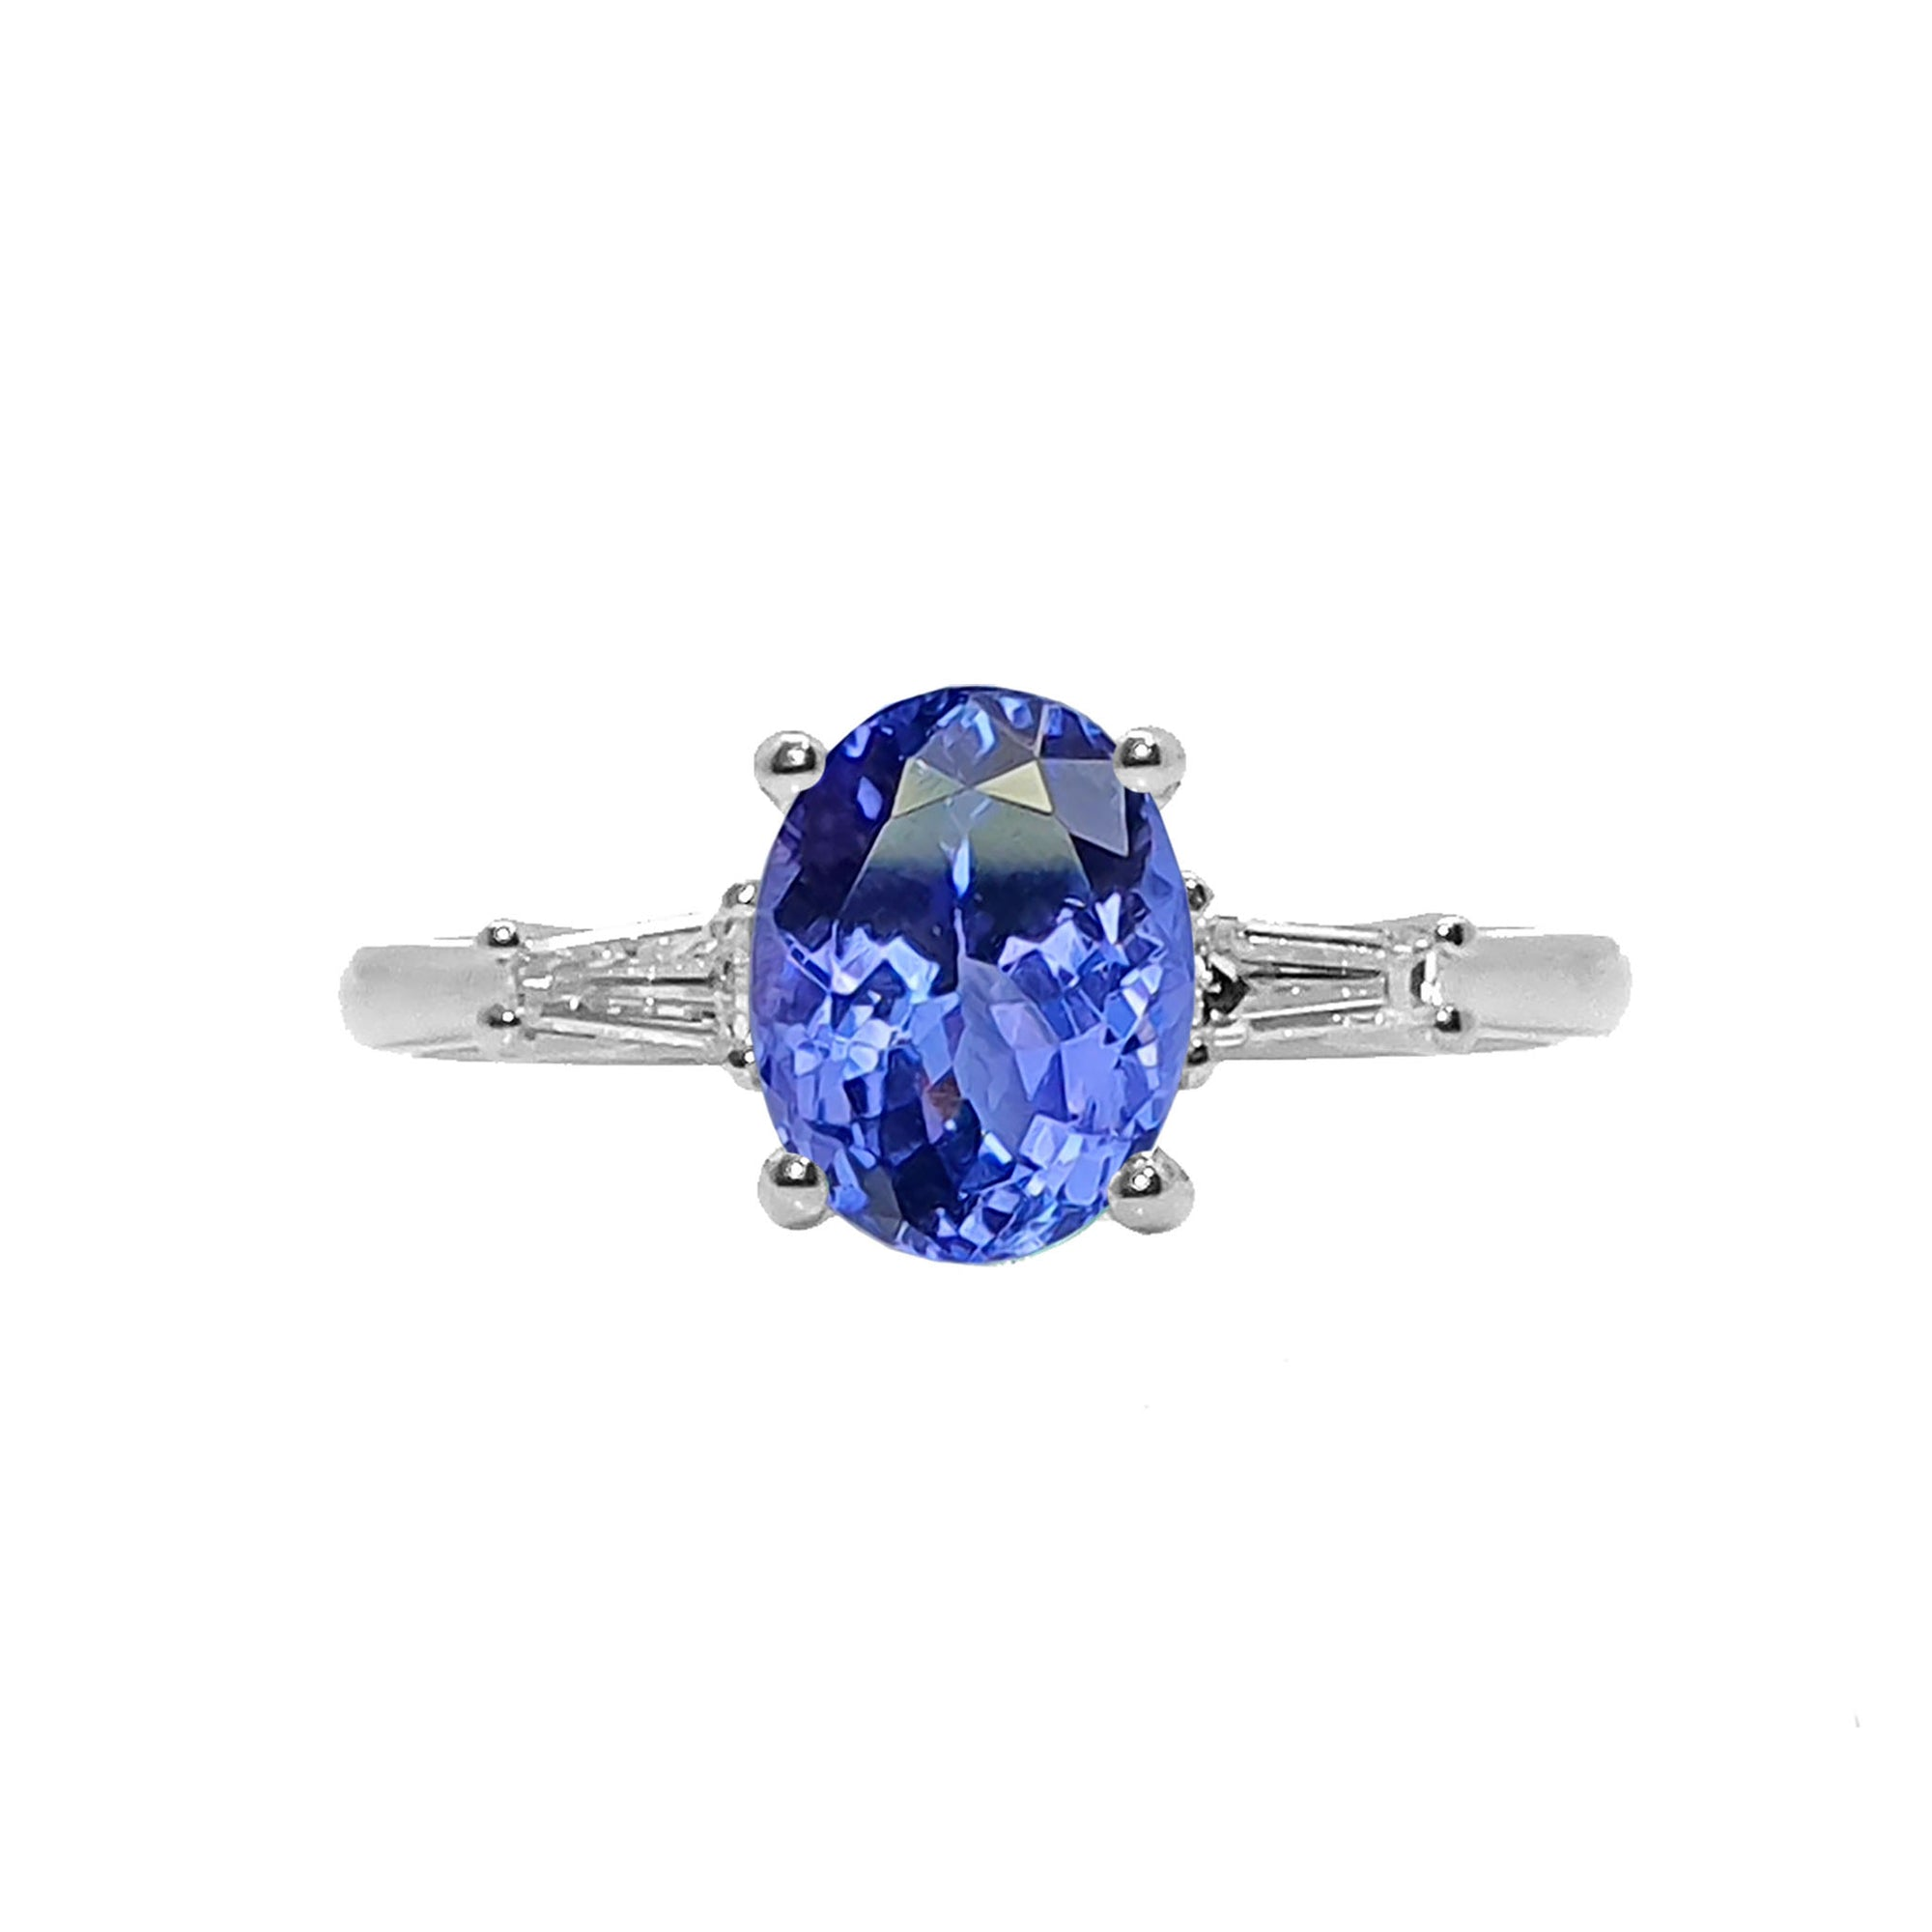 Ciarney Three Stone Ring - Tanzanite Oval 2020-189